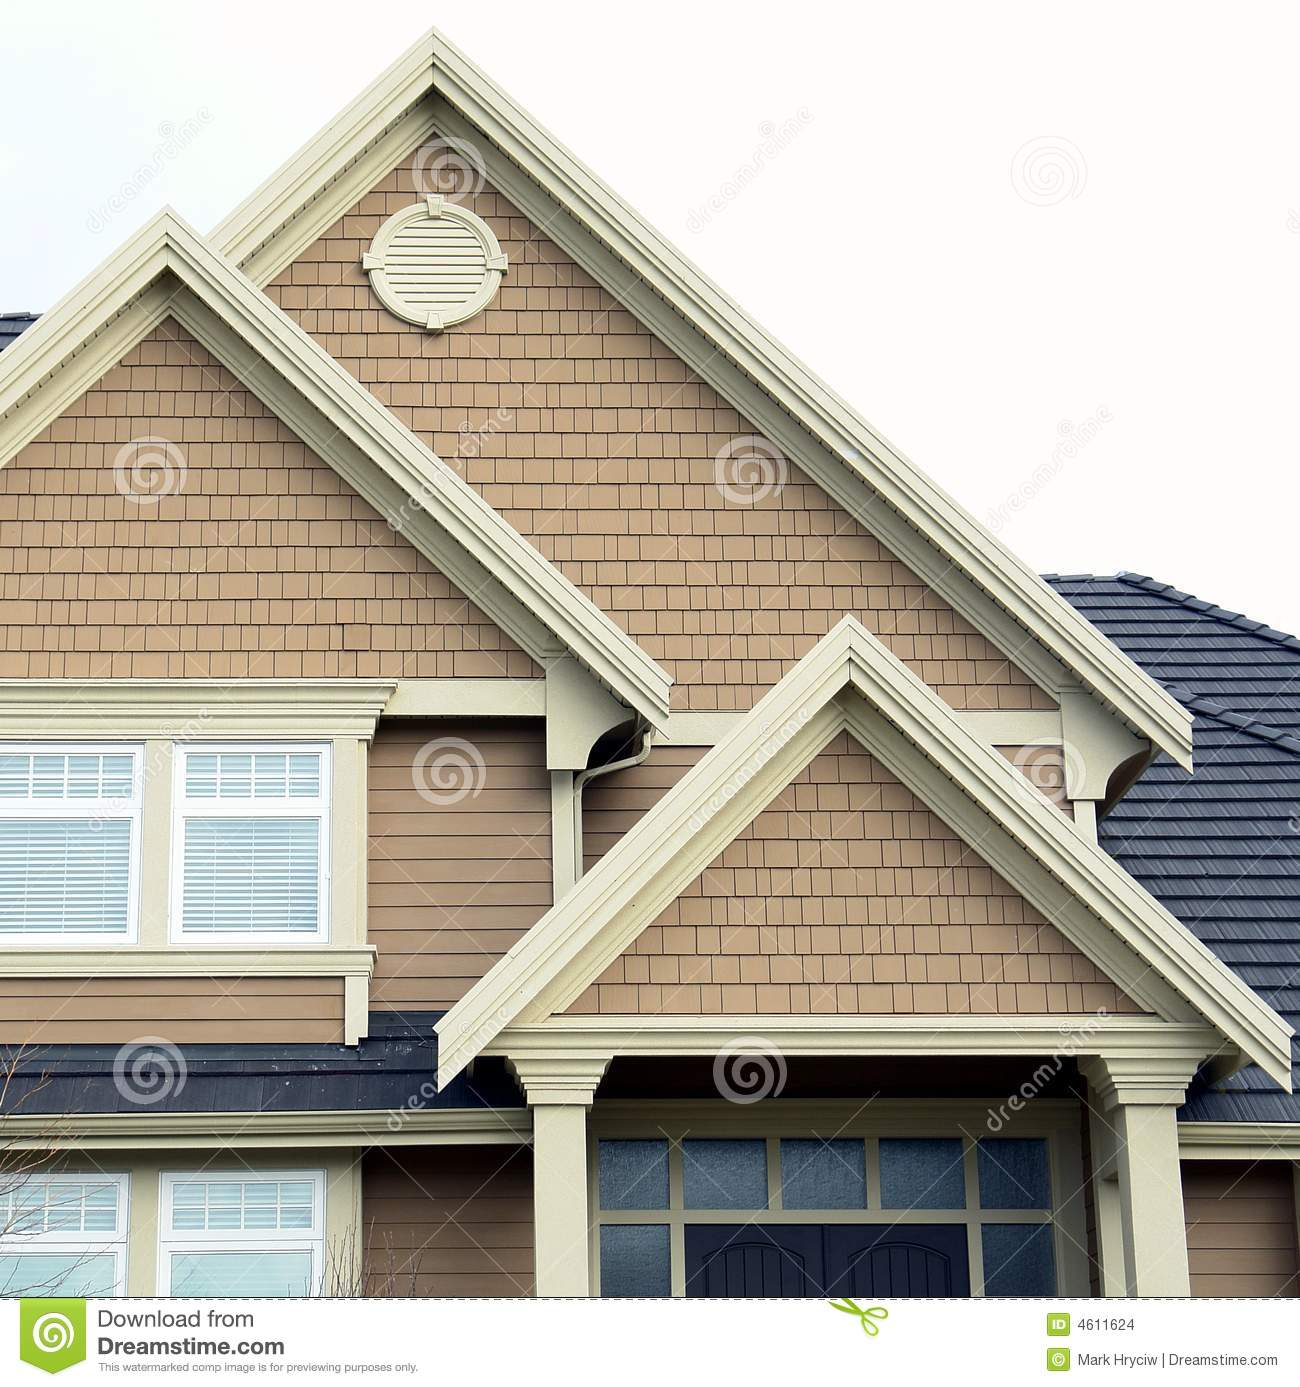 Home house roof siding peaks stock images image 4611624 for Roof peak decorations